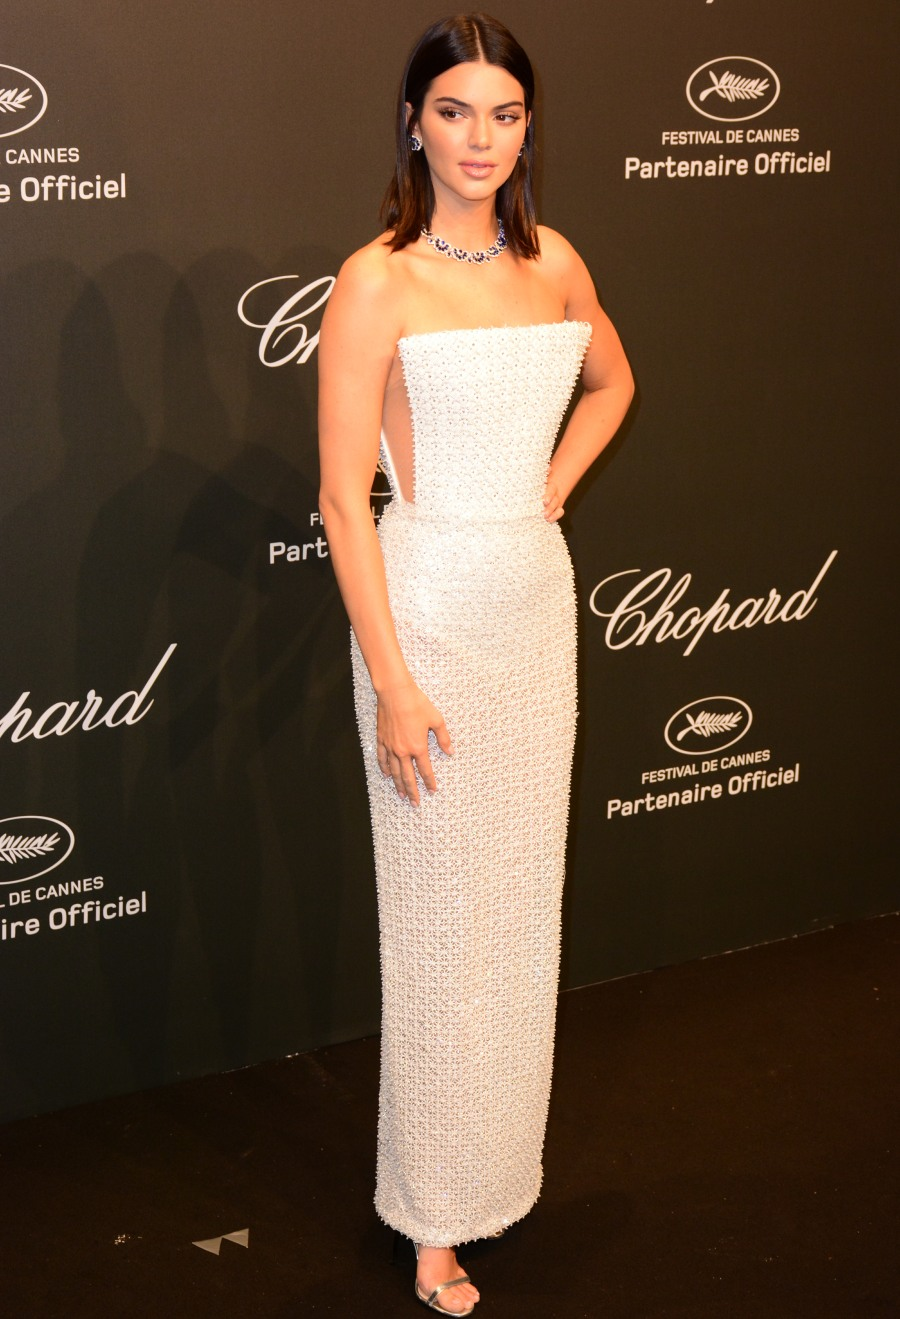 70th annual Cannes Film Festival - Chopard Space Party - Arrivals